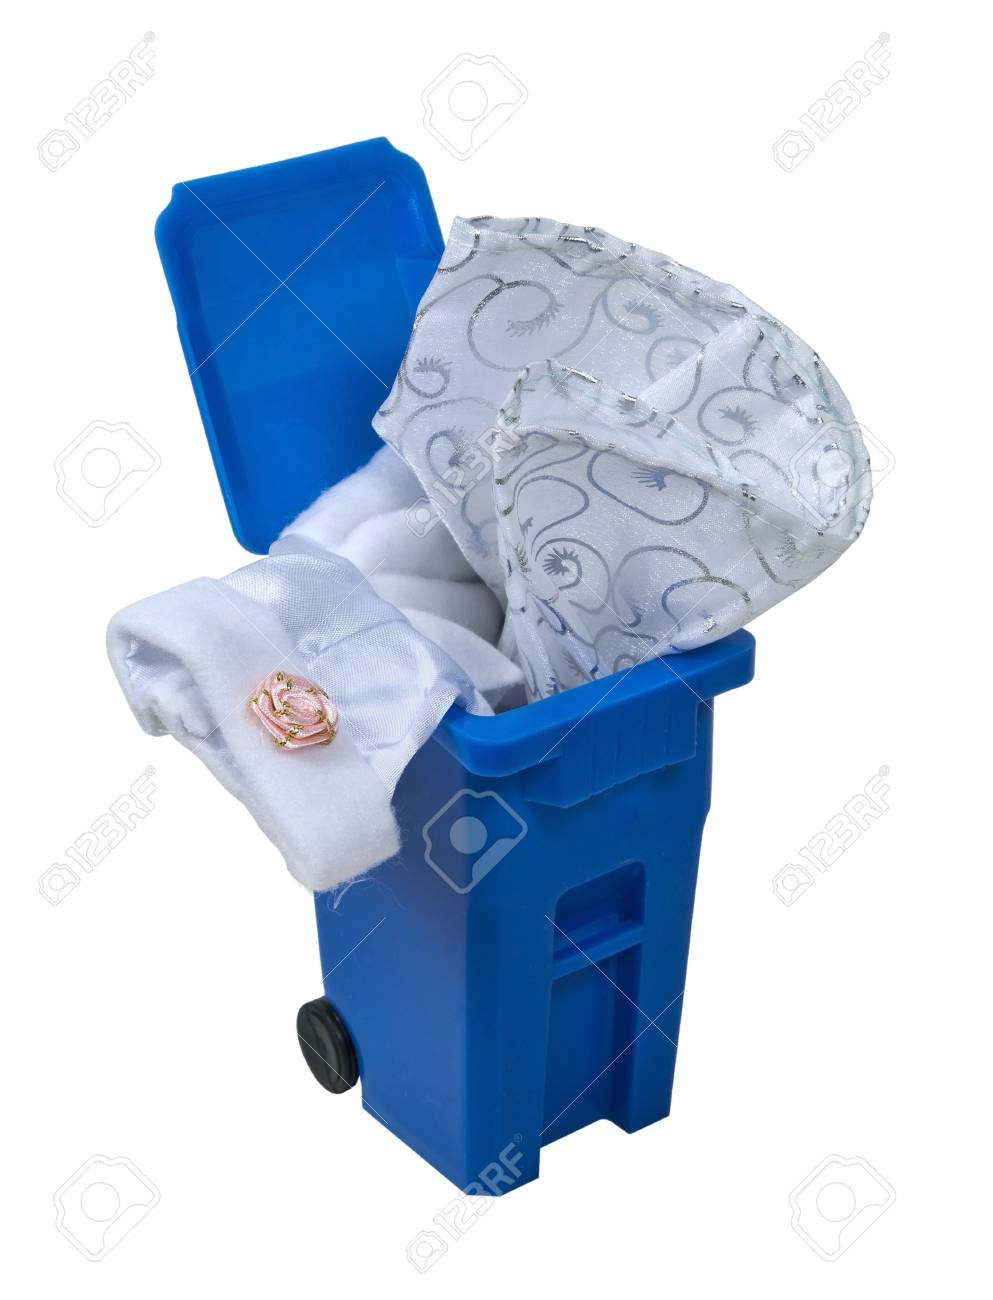 A fancy formal white dress with flowers and lace in a blue recycling a fancy formal white dress with flowers and lace in a blue recycling bin stock photo izmirmasajfo